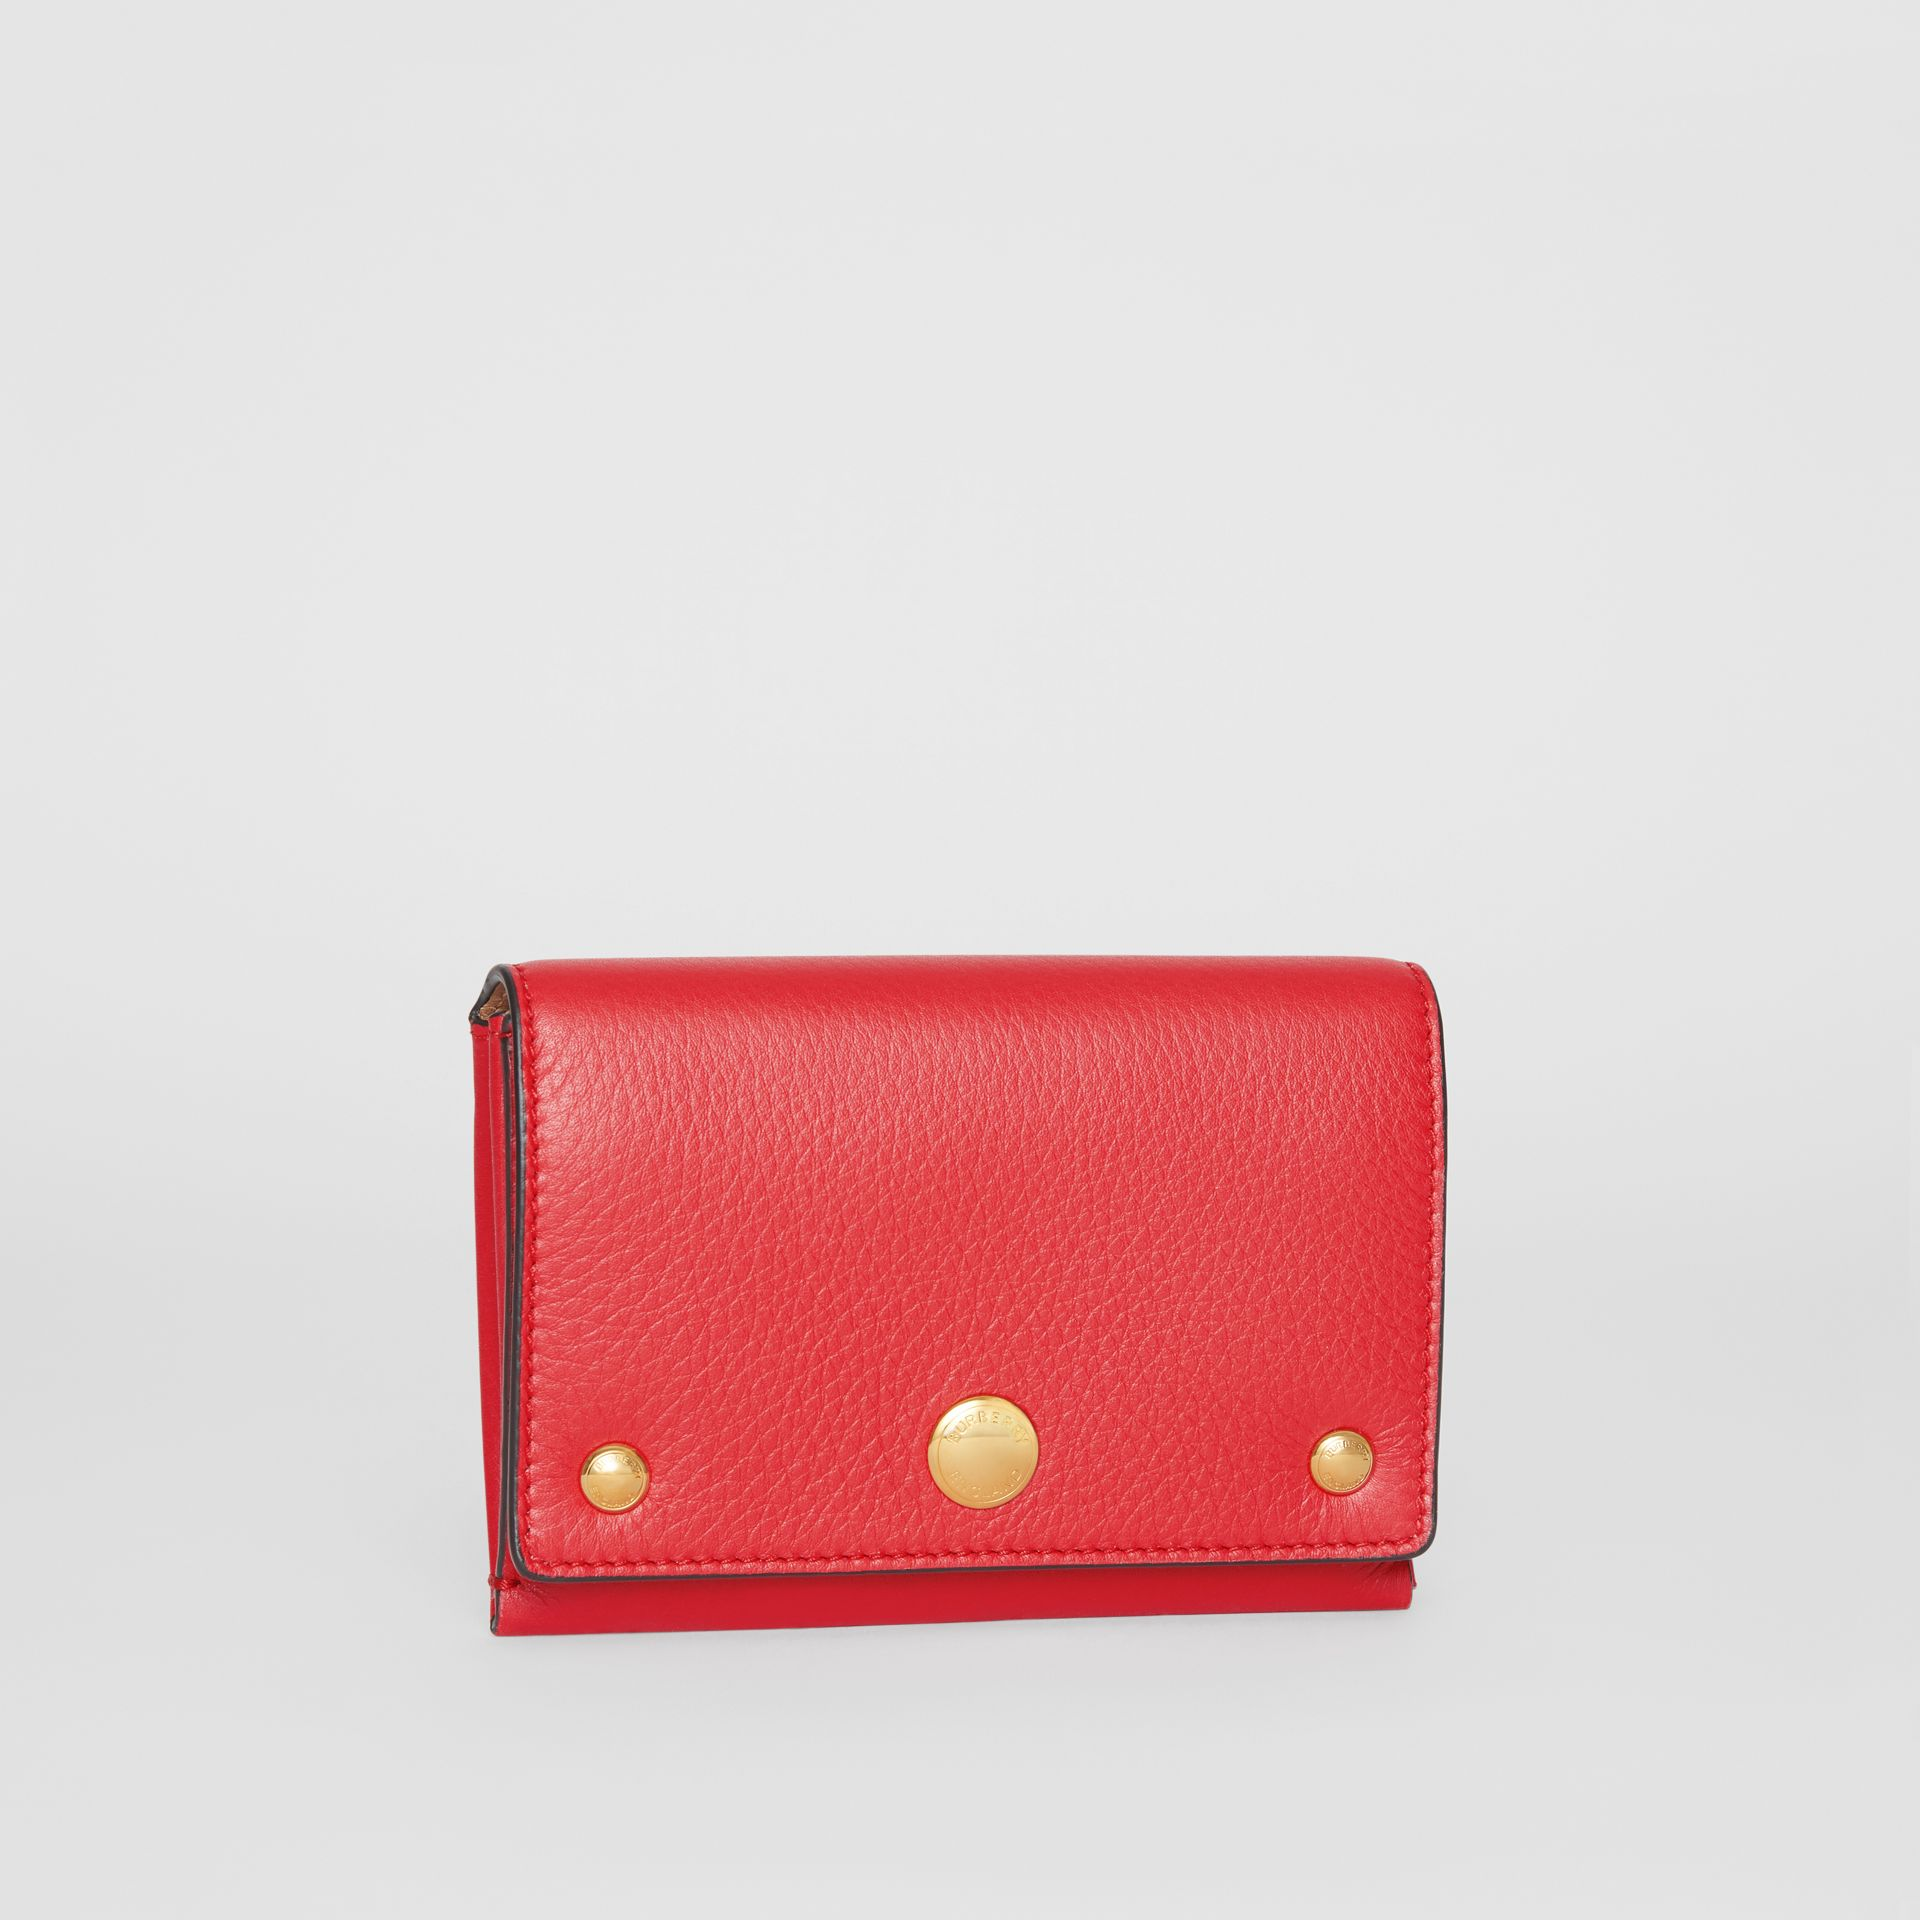 Triple Stud Leather Folding Wallet in Bright Military Red - Women | Burberry - gallery image 3